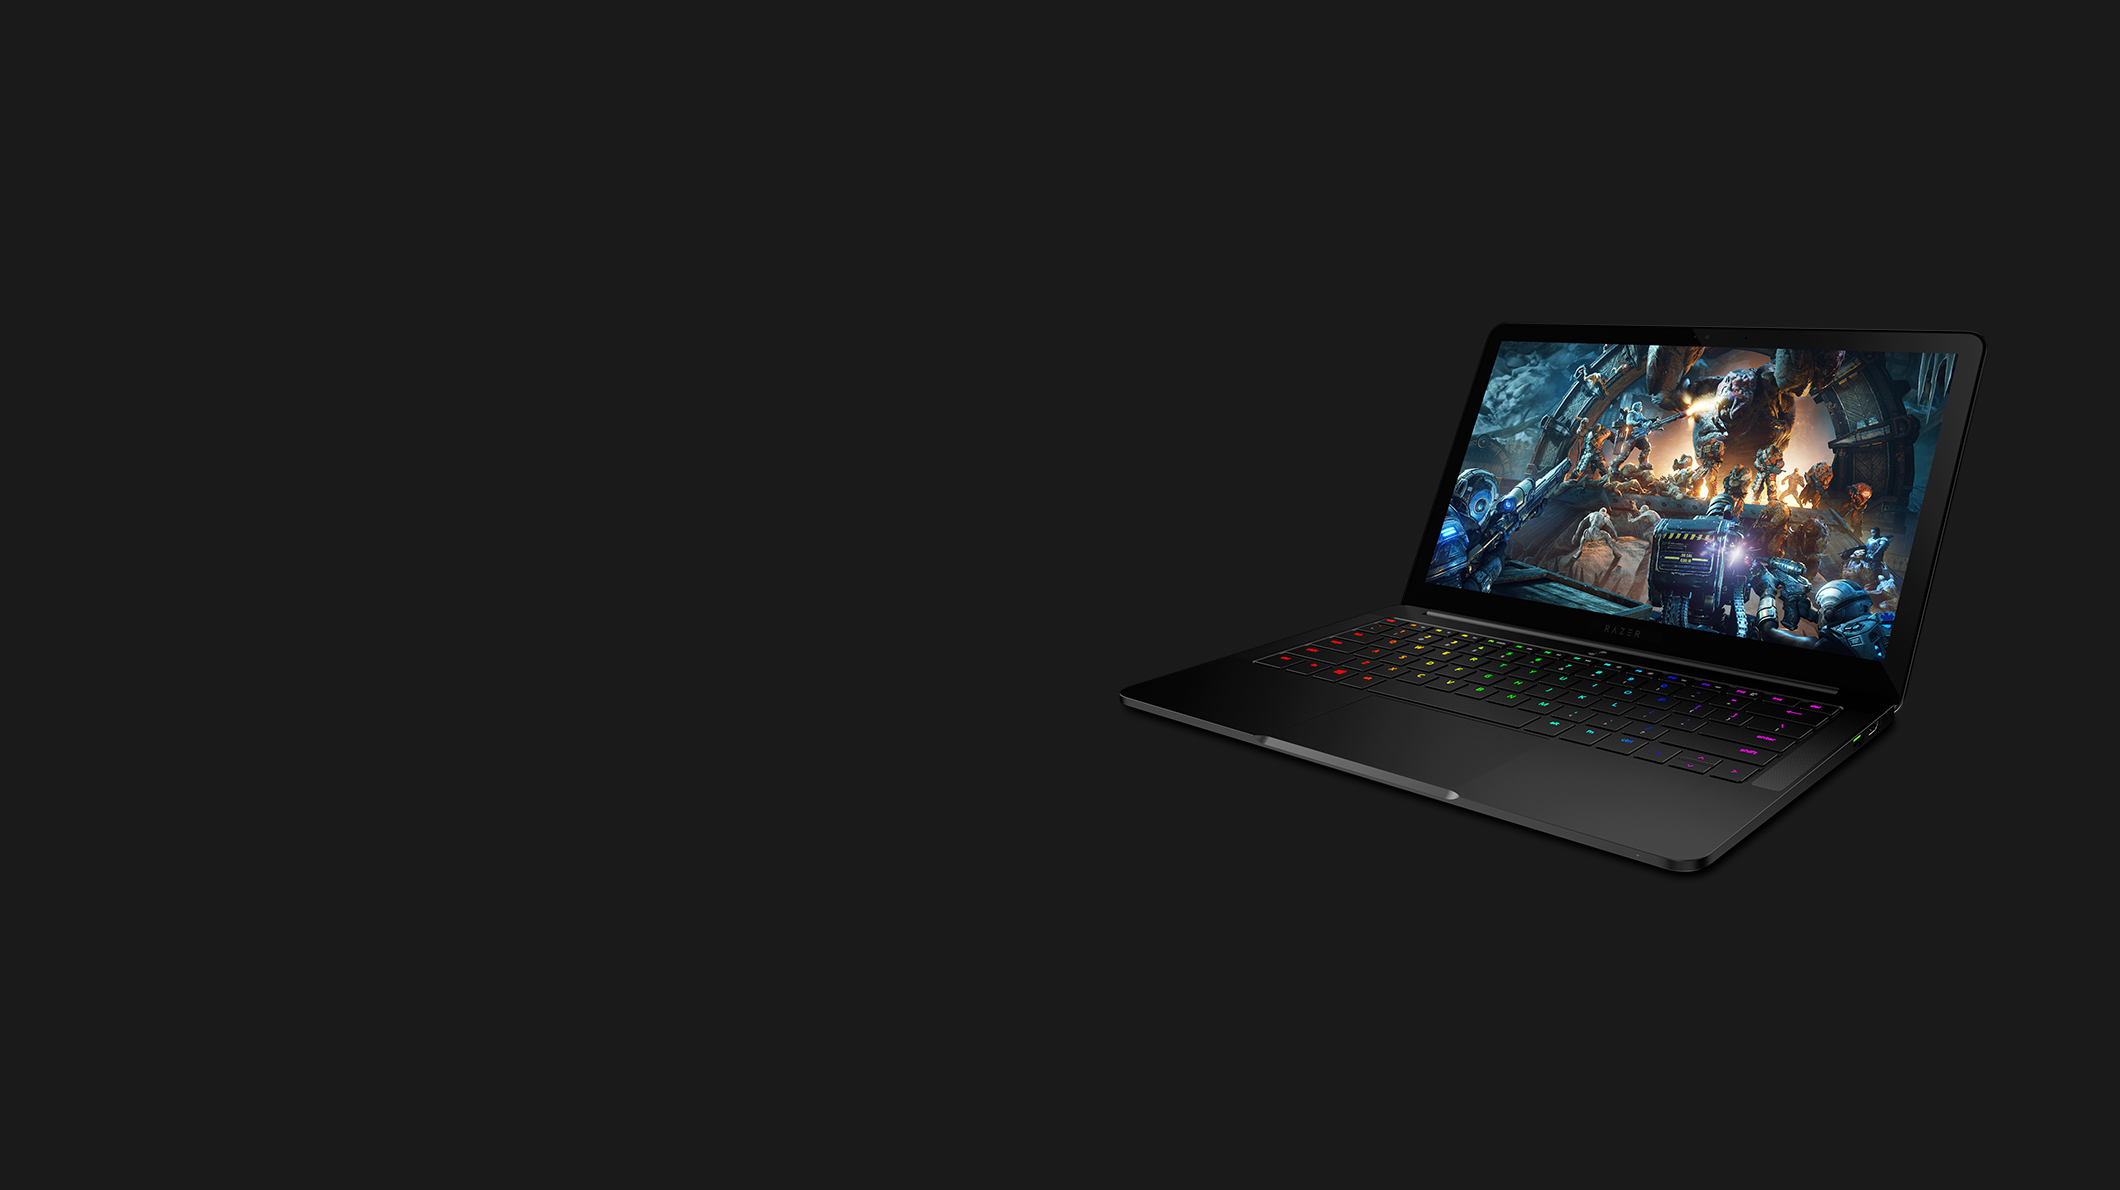 Razer laptop, gaming